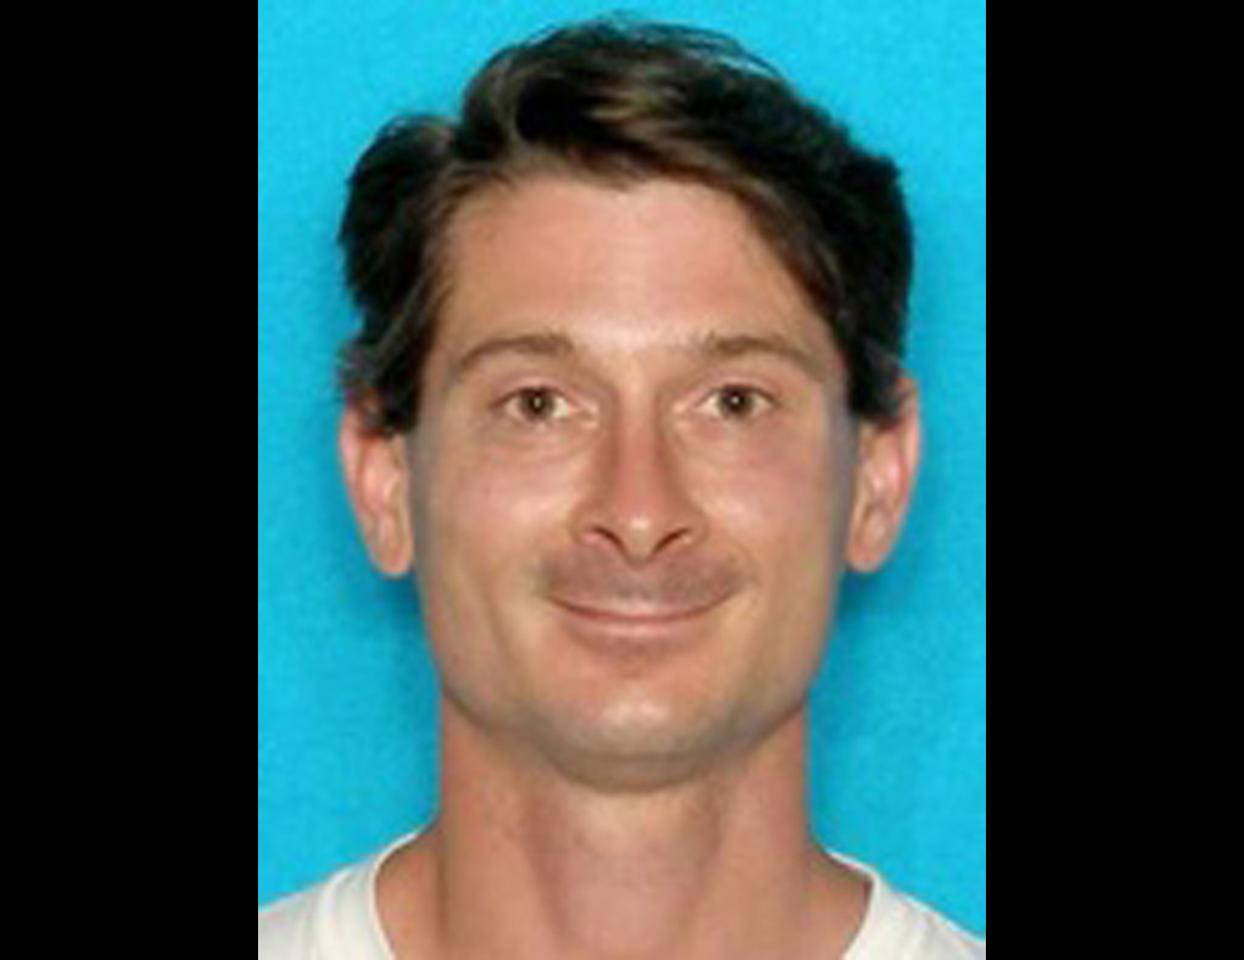 This undated photo provided by the City of College Station, Texas shows Thomas Caffall. Caffall, 35, has been identified by authorities as the shooter who opened fire from inside his home in College Station as he was being served an eviction notice, killing Brazos County constable Brian Bachmann and another man, on Monday, Aug. 13, 2012. (AP Photo/City of College Station)